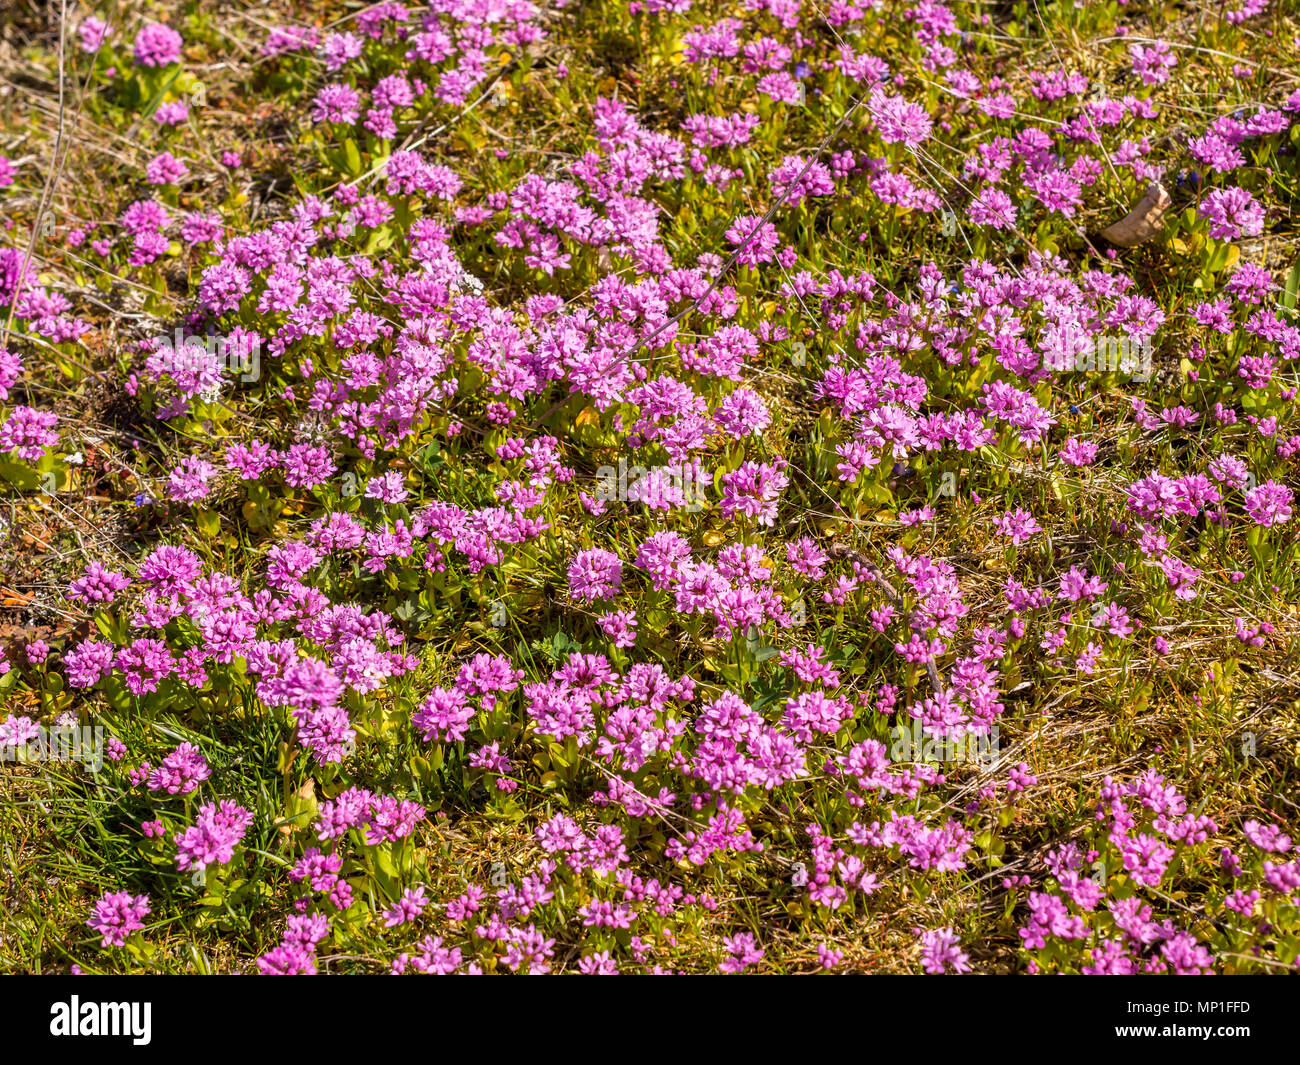 Sea Thrift plants, Helliwell Provincial Park, Hornby Island, BC, Canada. - Stock Image